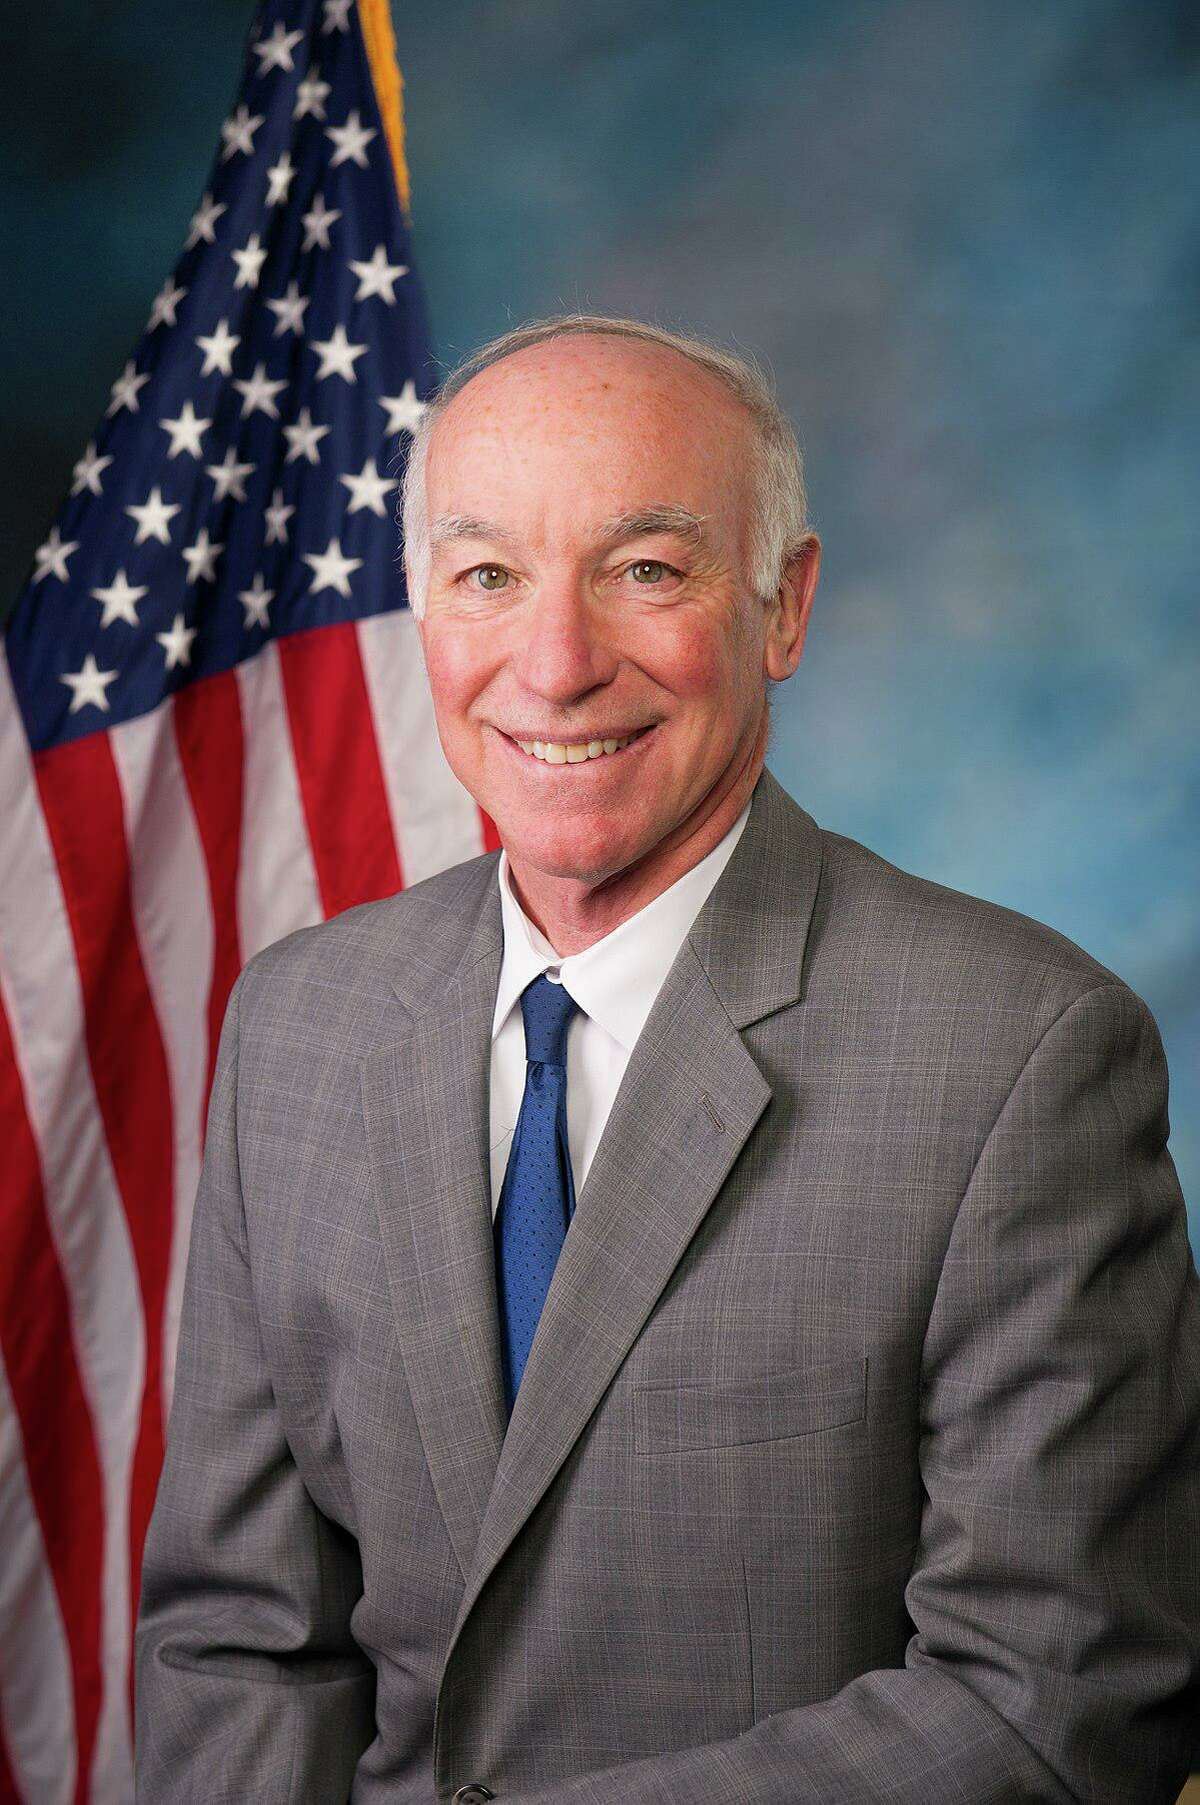 Middlesex County Chamber of Commerce will host U.S. Congressman Joe Courtney as its guest speaker for the Member Breakfast Meeting on Feb. 22. Courtney was elected in 2006 to represent the Second Congressional District of Connecticut in the House of Representatives. He serves on the Armed Services, and Education and Workforce Committees, and is chairman of the Seapower and Projection Forces Subcommittee. The event is sponsored by the Mohegan Tribe. Cost is $22 for members of the Middlesex County Chamber of Commerce and $32 for non-members. Advance registration required; go to www.middlesexchamber.com.